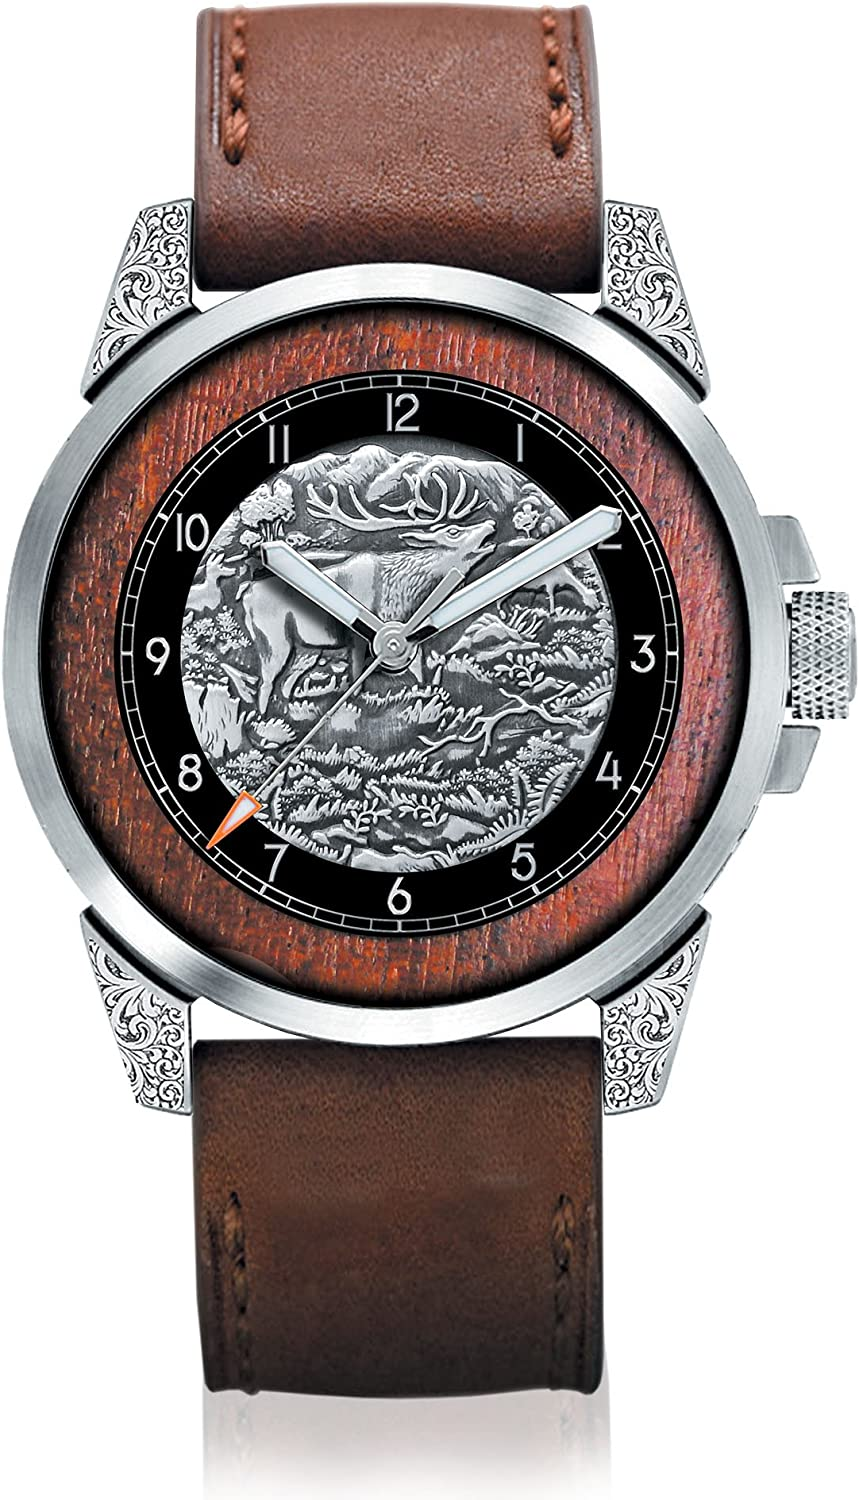 King of The Woods' Stag Men's Watch – Handcrafted Stag Watch